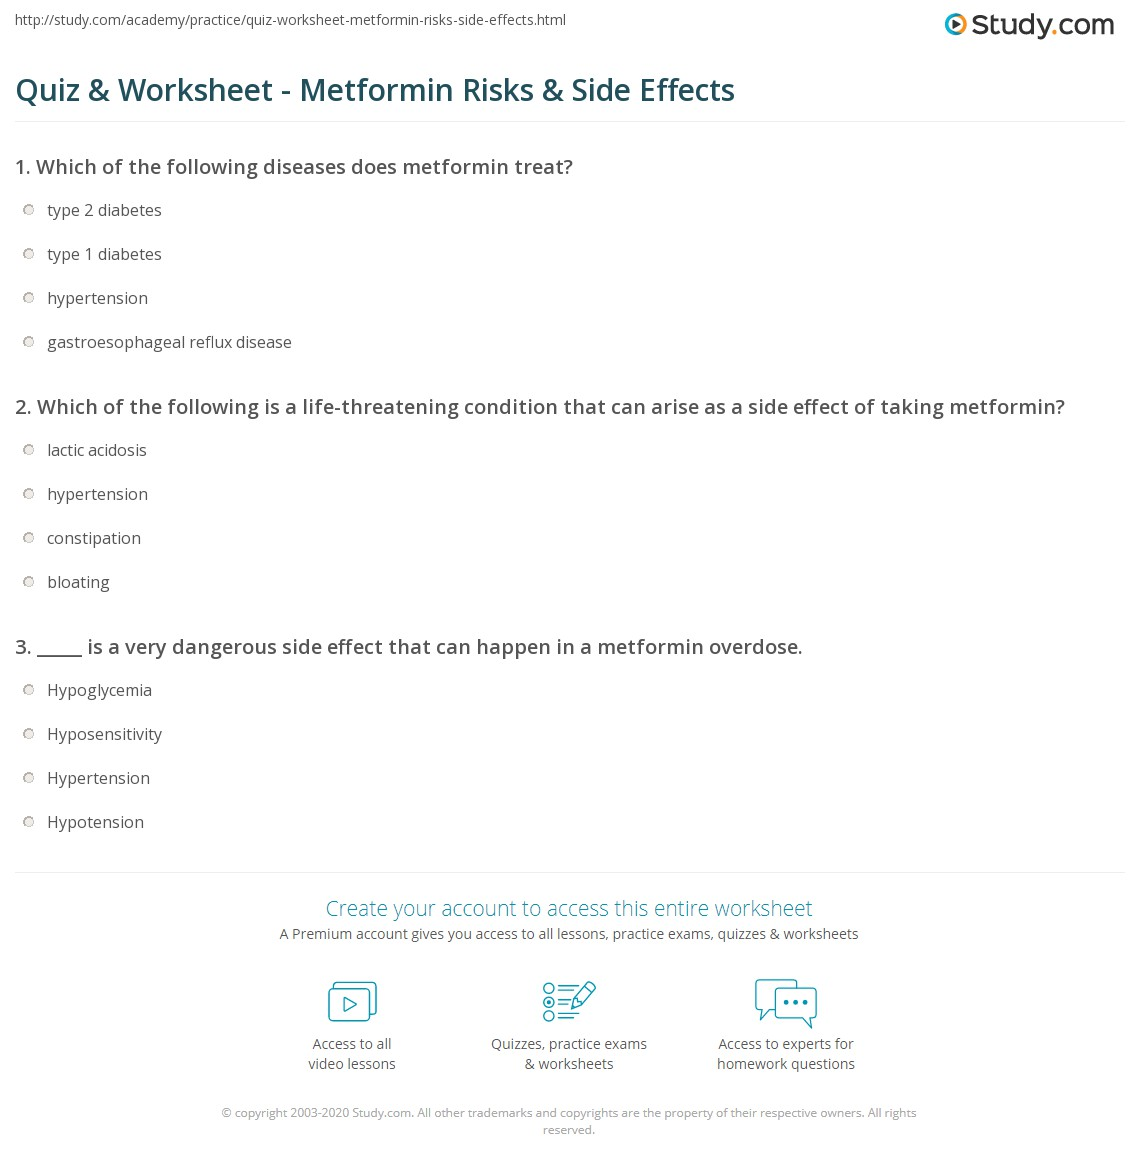 Quiz & Worksheet - Metformin Risks & Side Effects | Study com